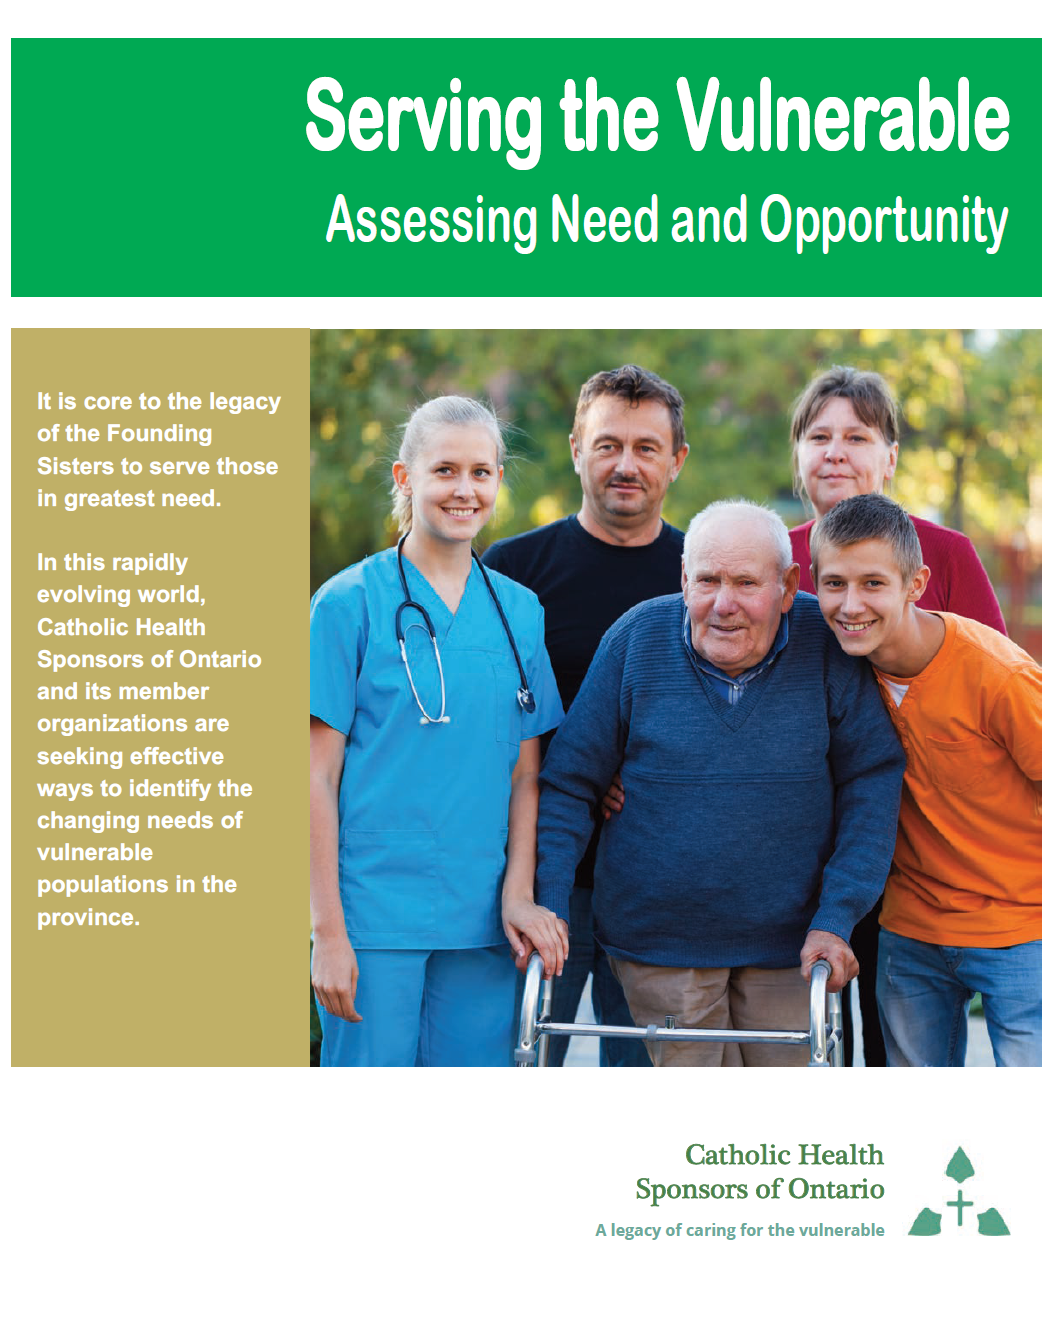 Serving the Vulnerable - Assessing Need and Opportunity